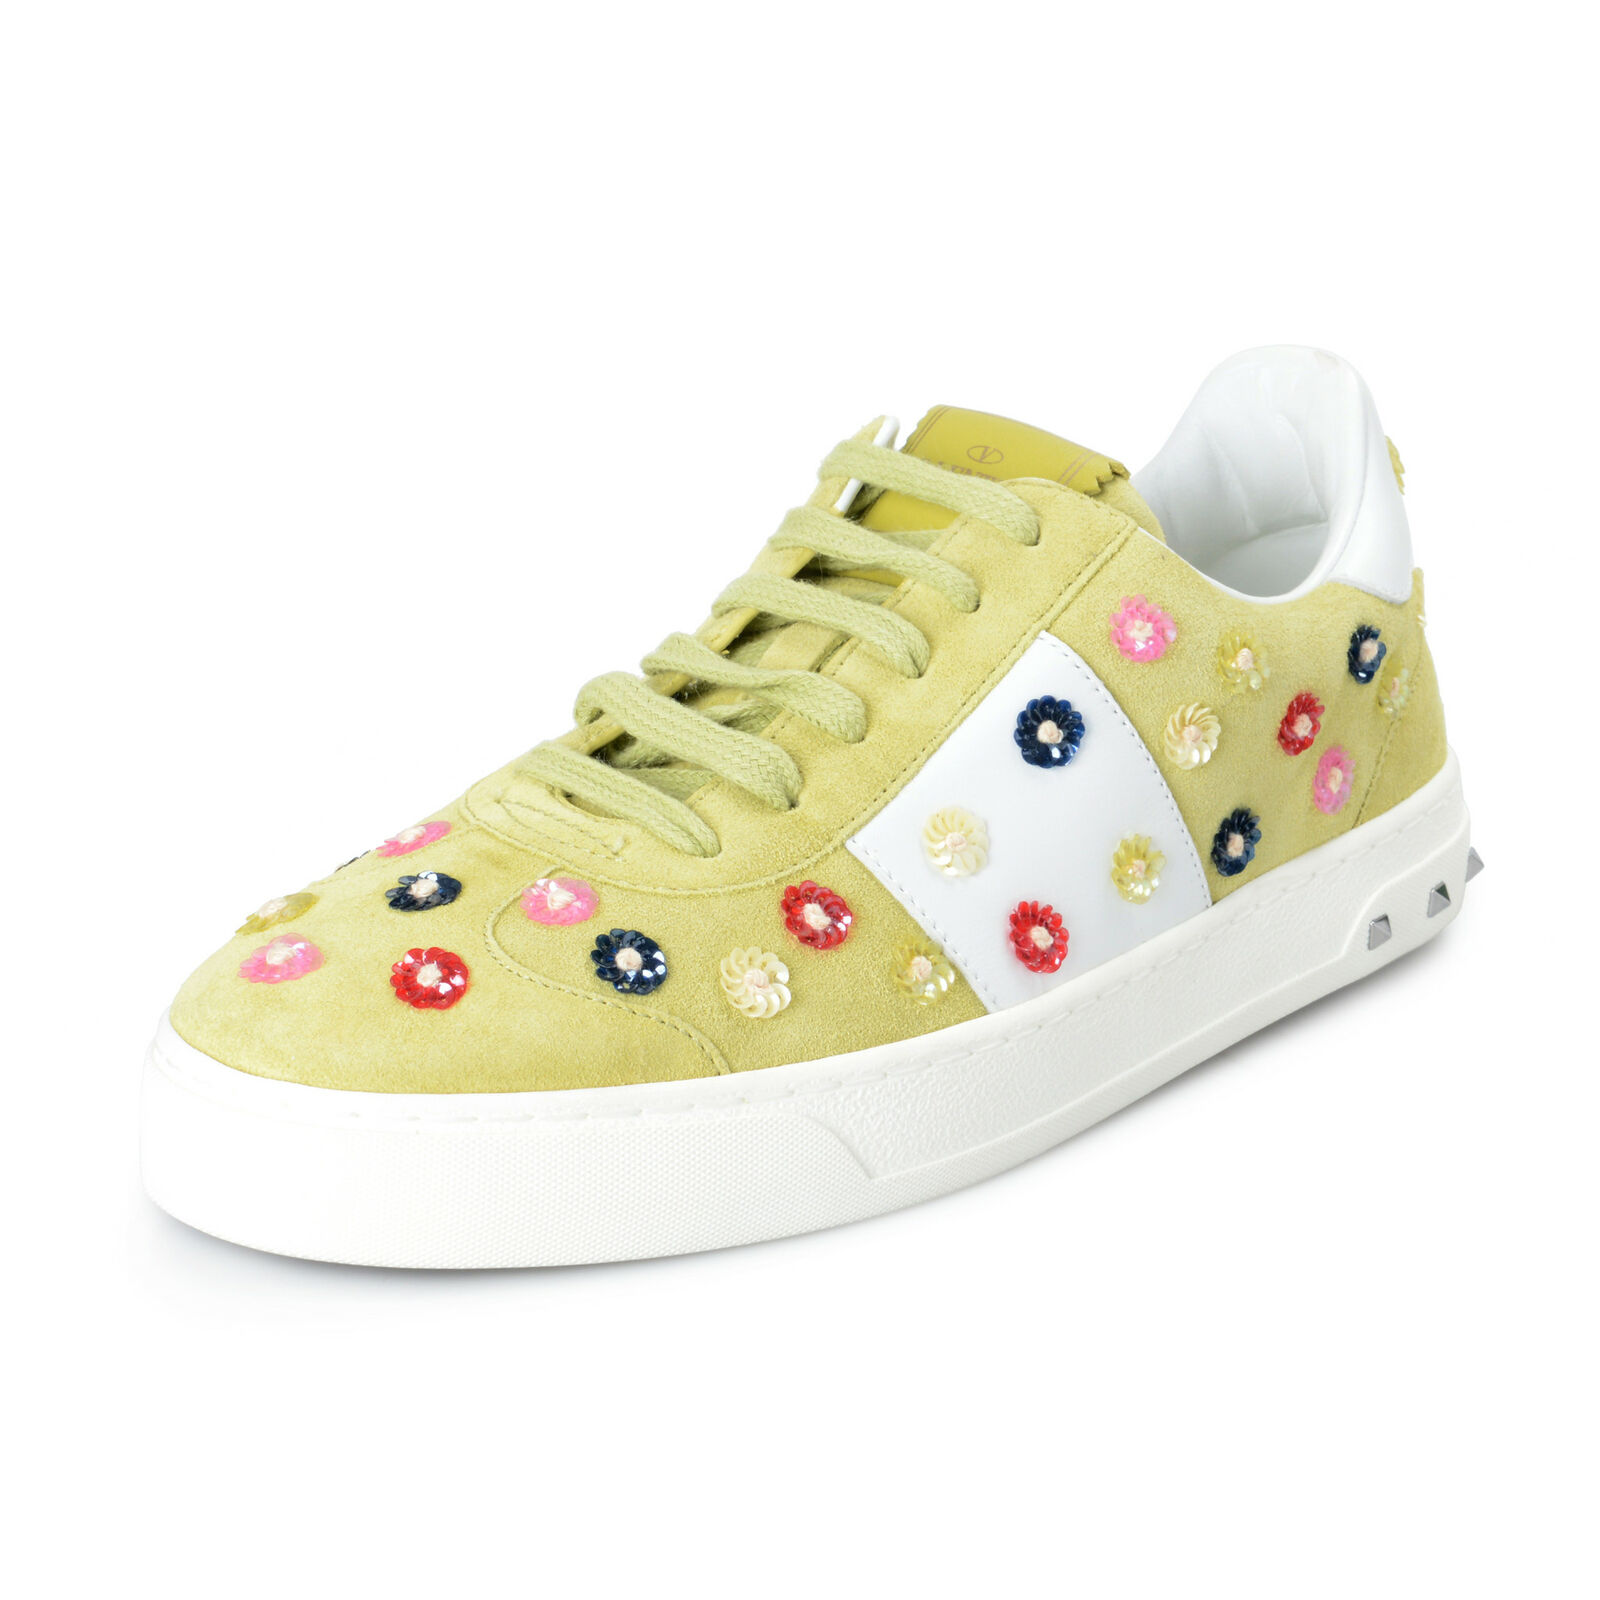 Valentino Garavani Women's Suede Leather Embellished Fashion Sneakers shoes 7 9